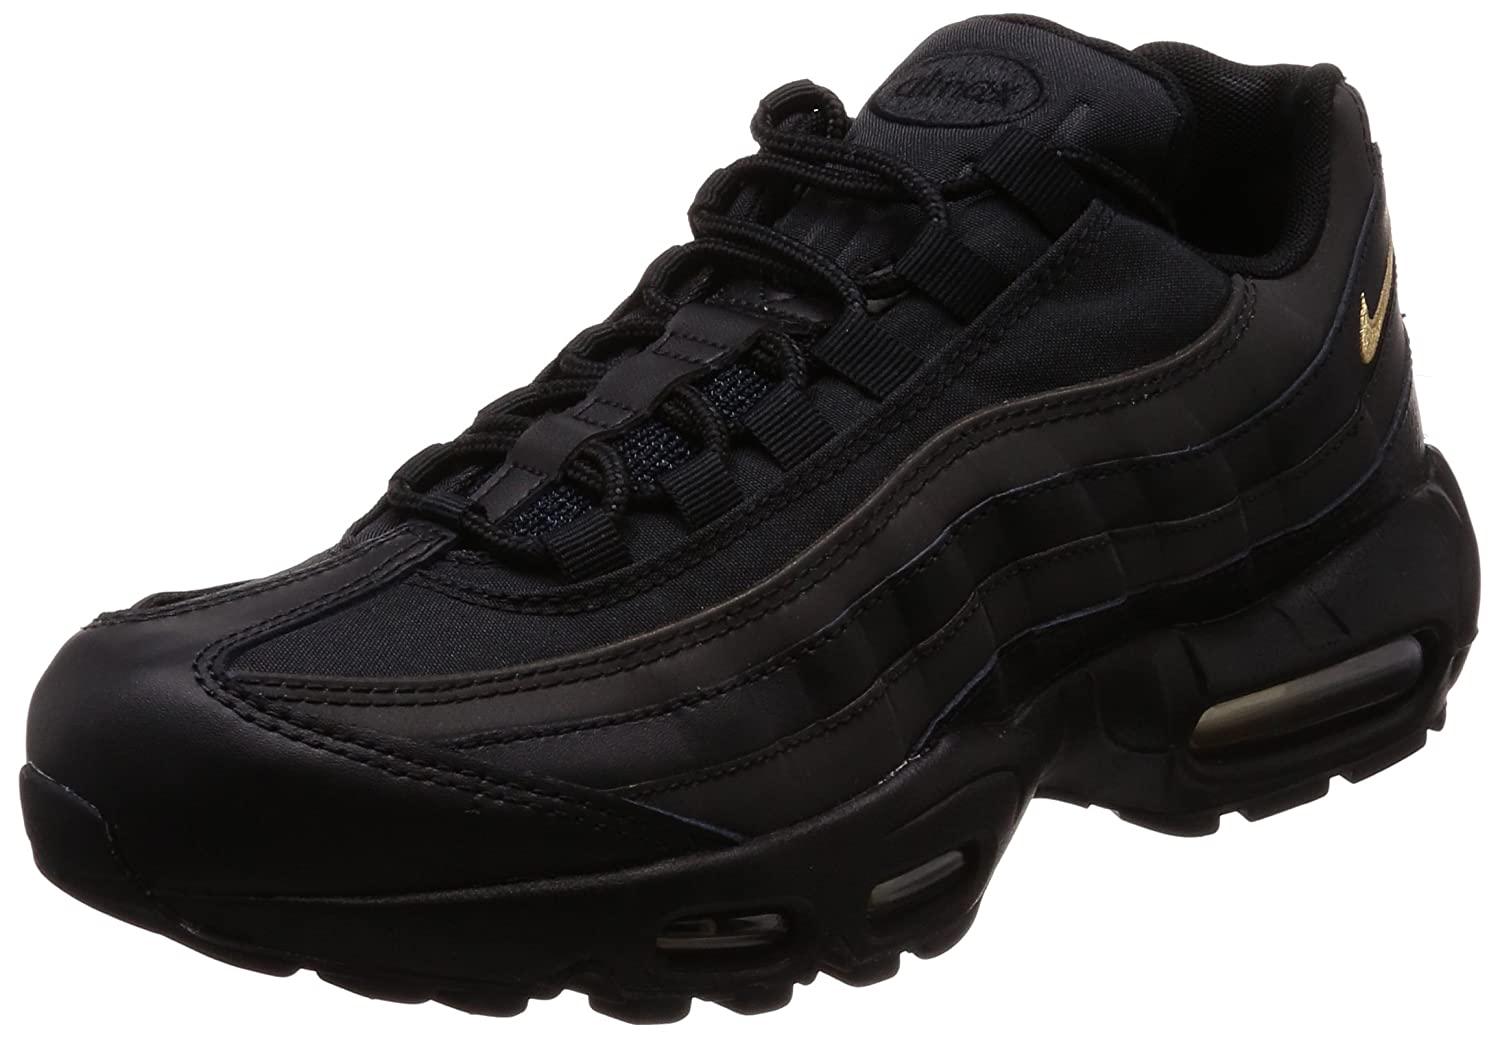 san francisco 3266b 5e45a Amazon.com   Nike Men s Air Max 95 Premium SE Black Metallic Gold 924478-003    Basketball